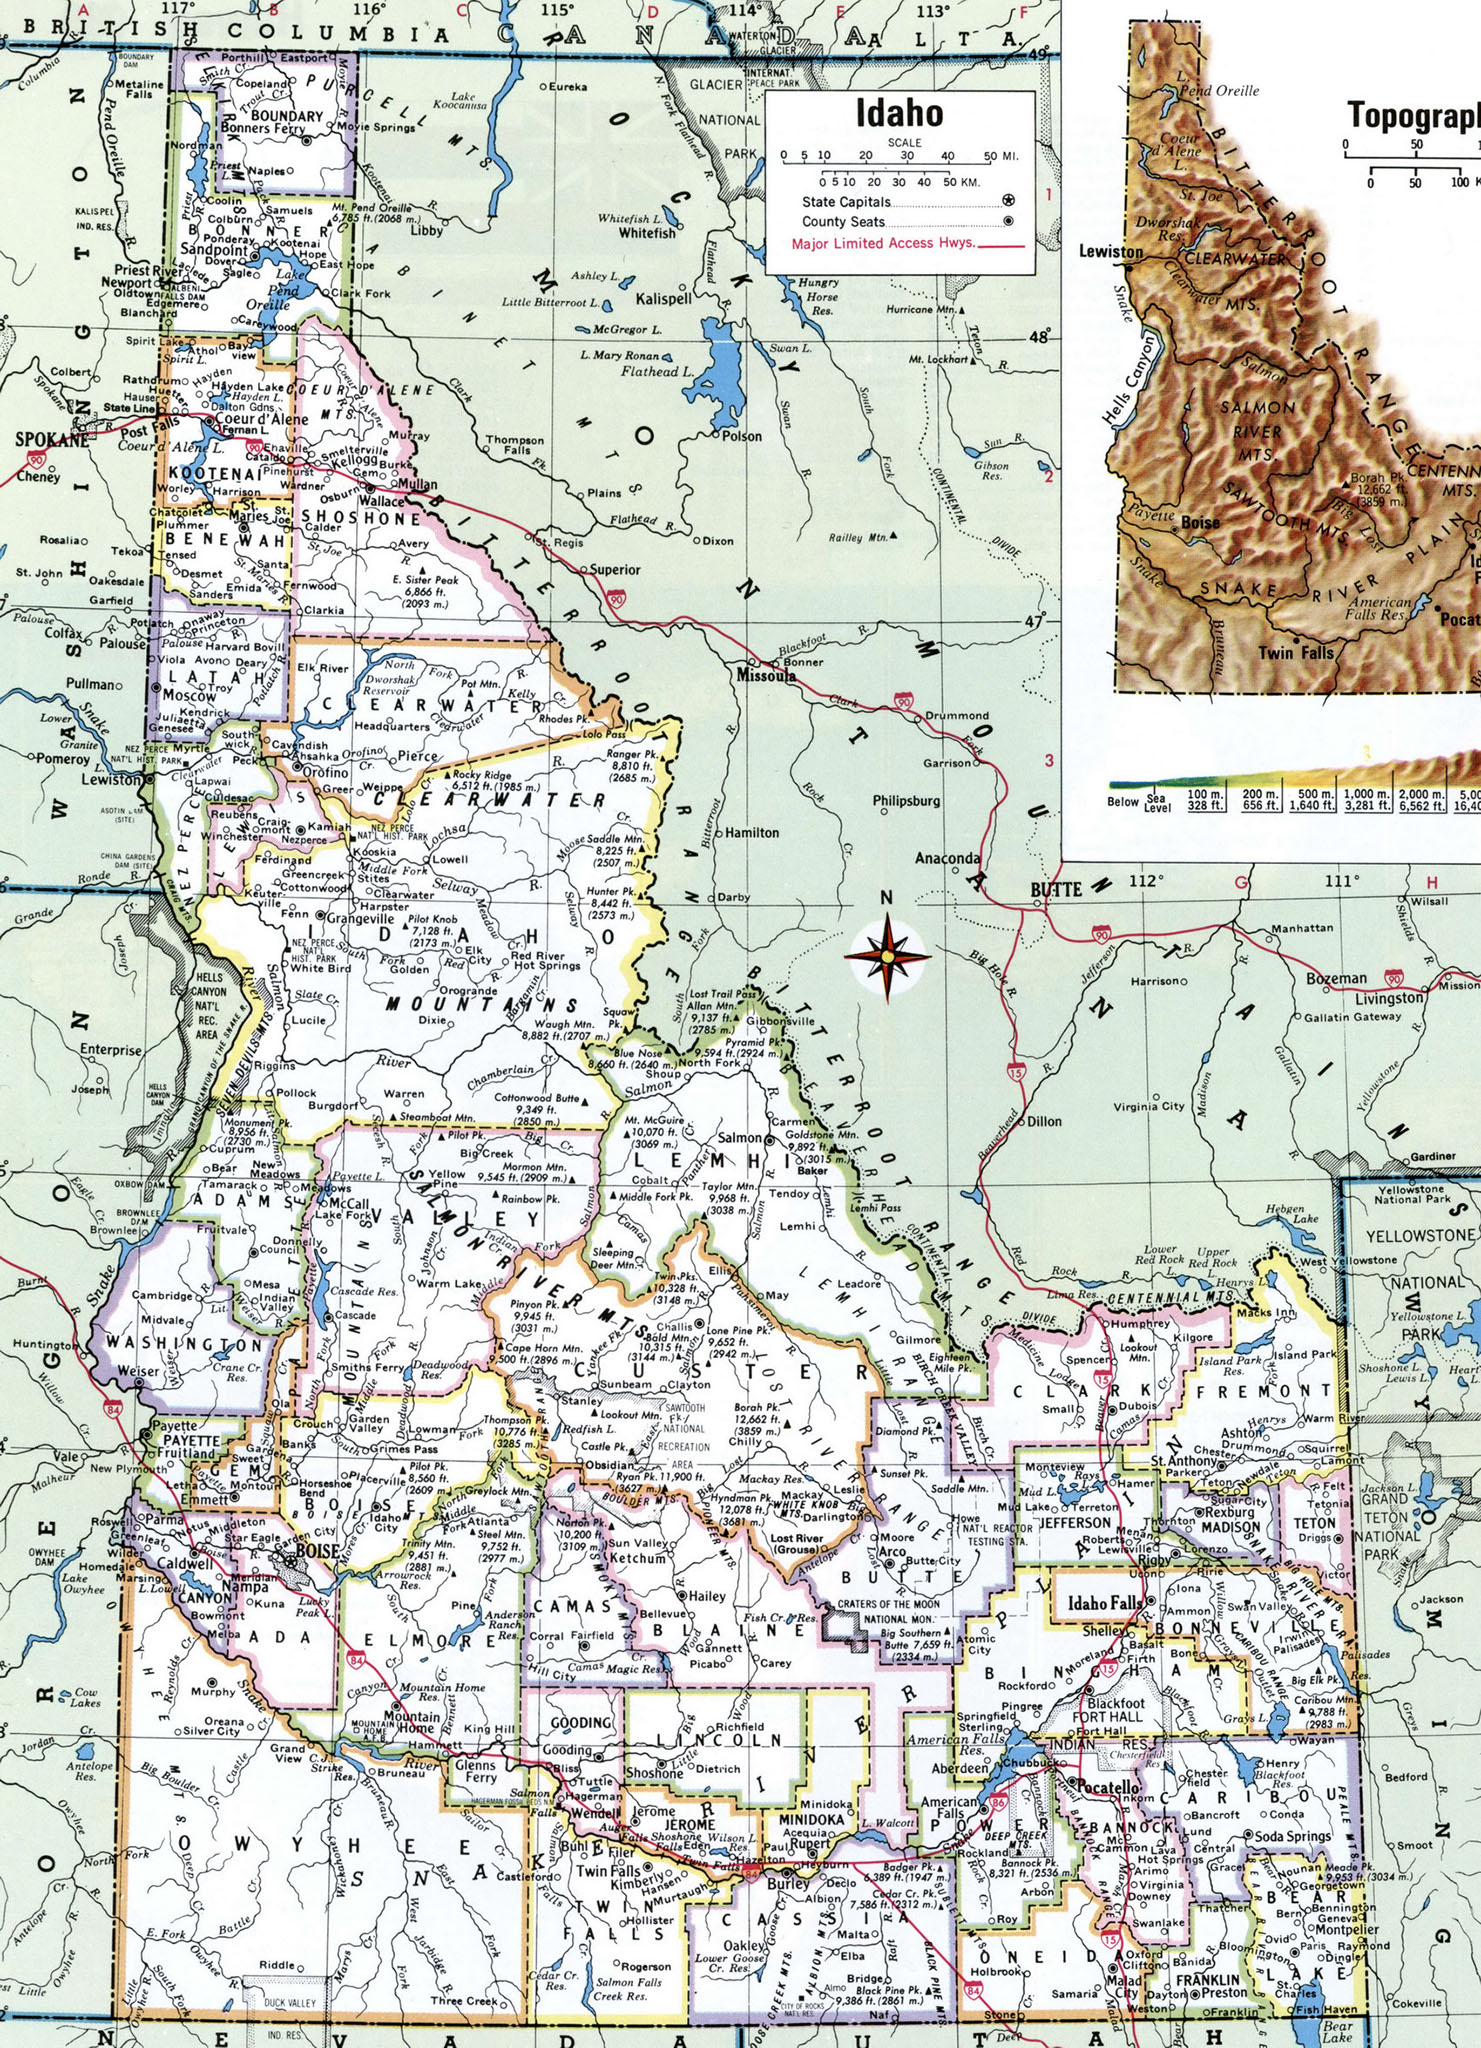 Idaho County - Map of idaho with cities